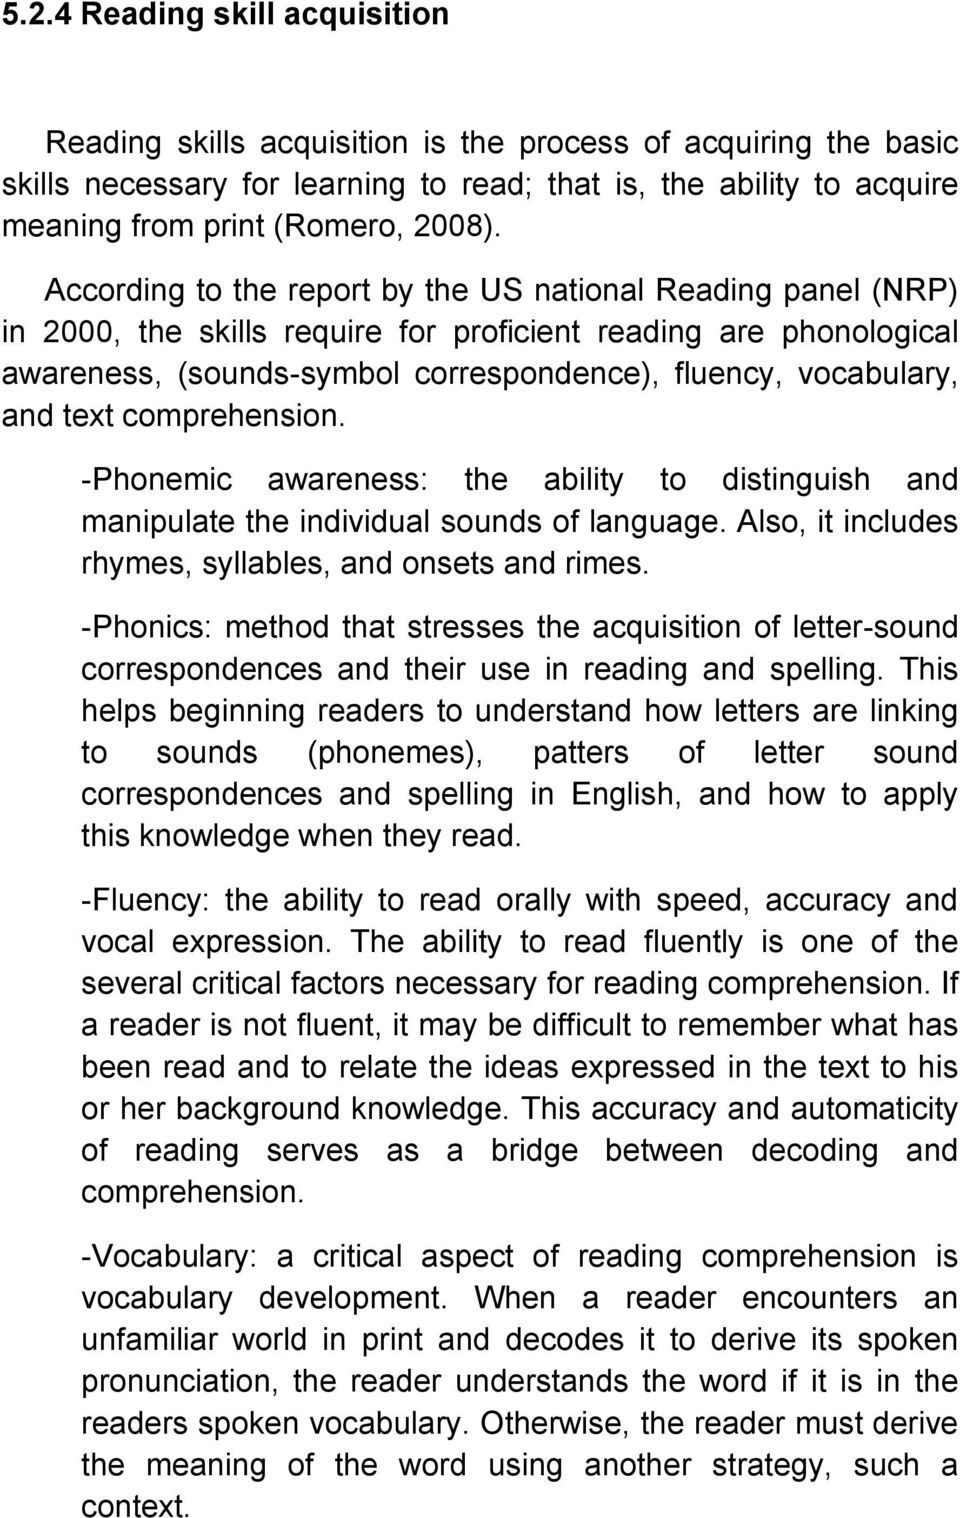 According to the report by the US national Reading panel (NRP) in 2000, the skills require for proficient reading are phonological awareness, (sounds-symbol correspondence), fluency, vocabulary, and